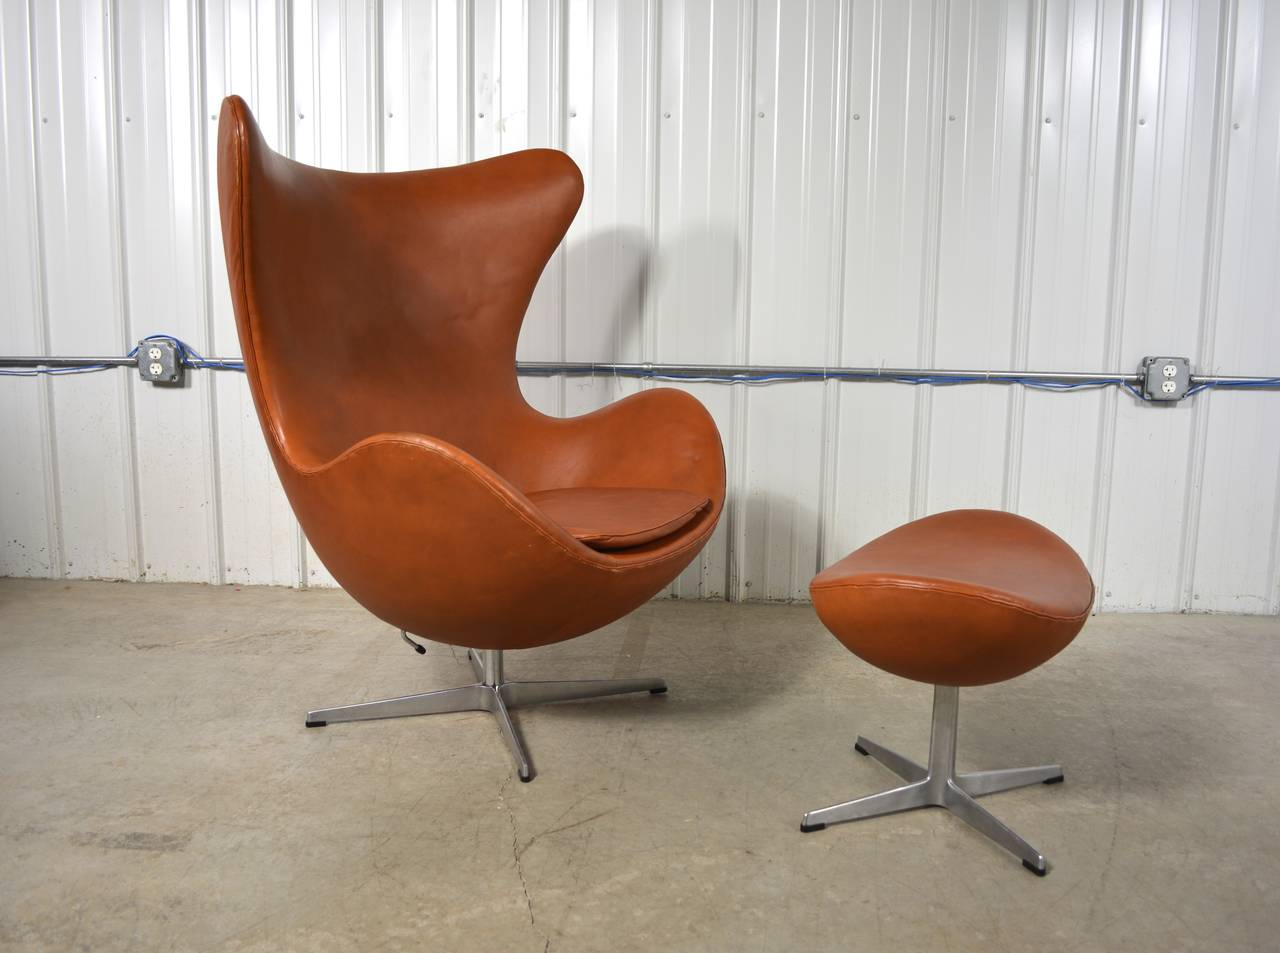 Arne Jacobsen Egg Chair And Ottoman For Sale At 1stdibs